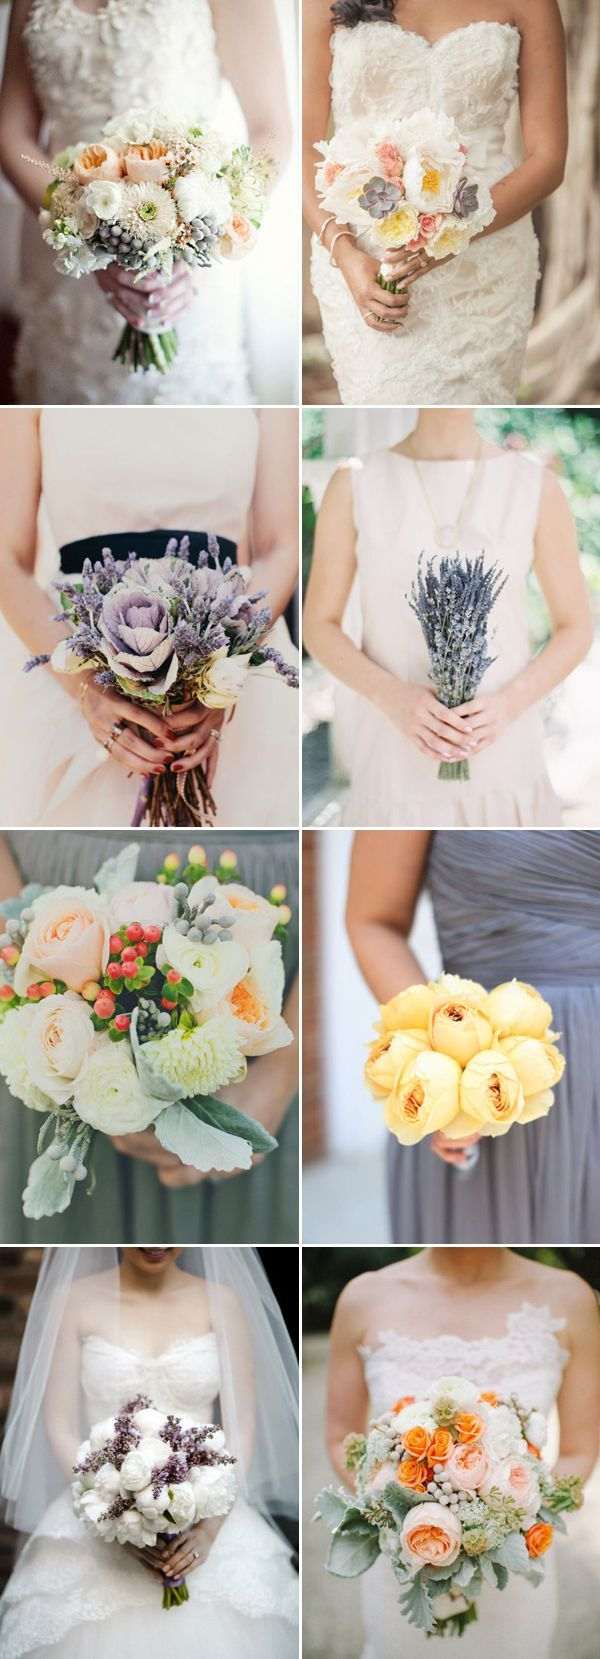 Wedding Flowers-Weding Bouquets(37)